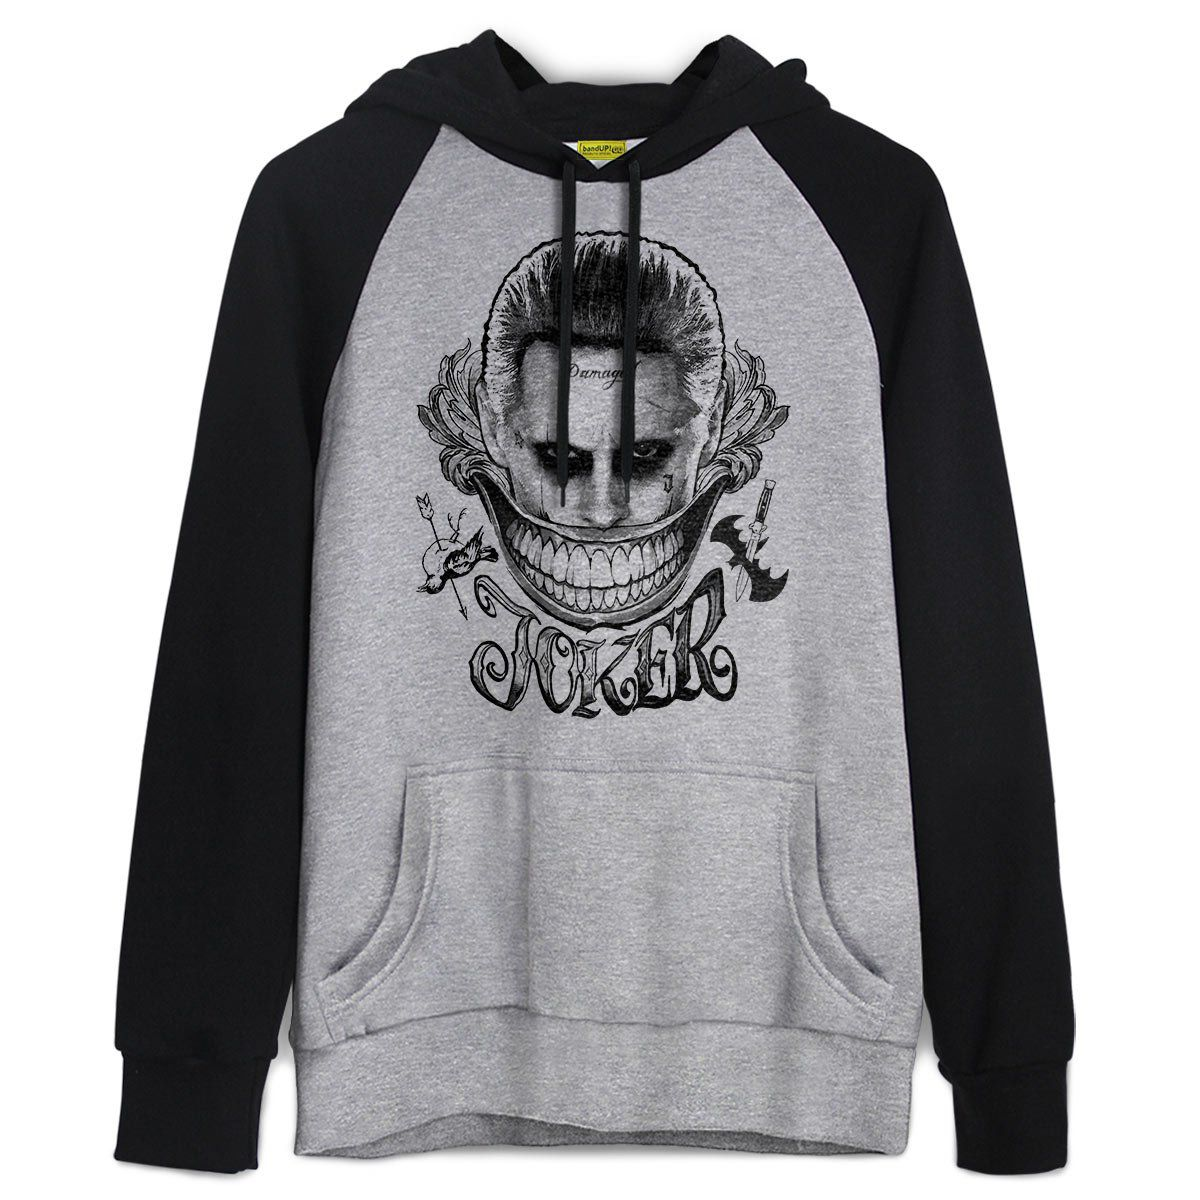 Moletom Raglan Esquadrão Suicida The Joker Damaged  - bandUP Store Marketplace